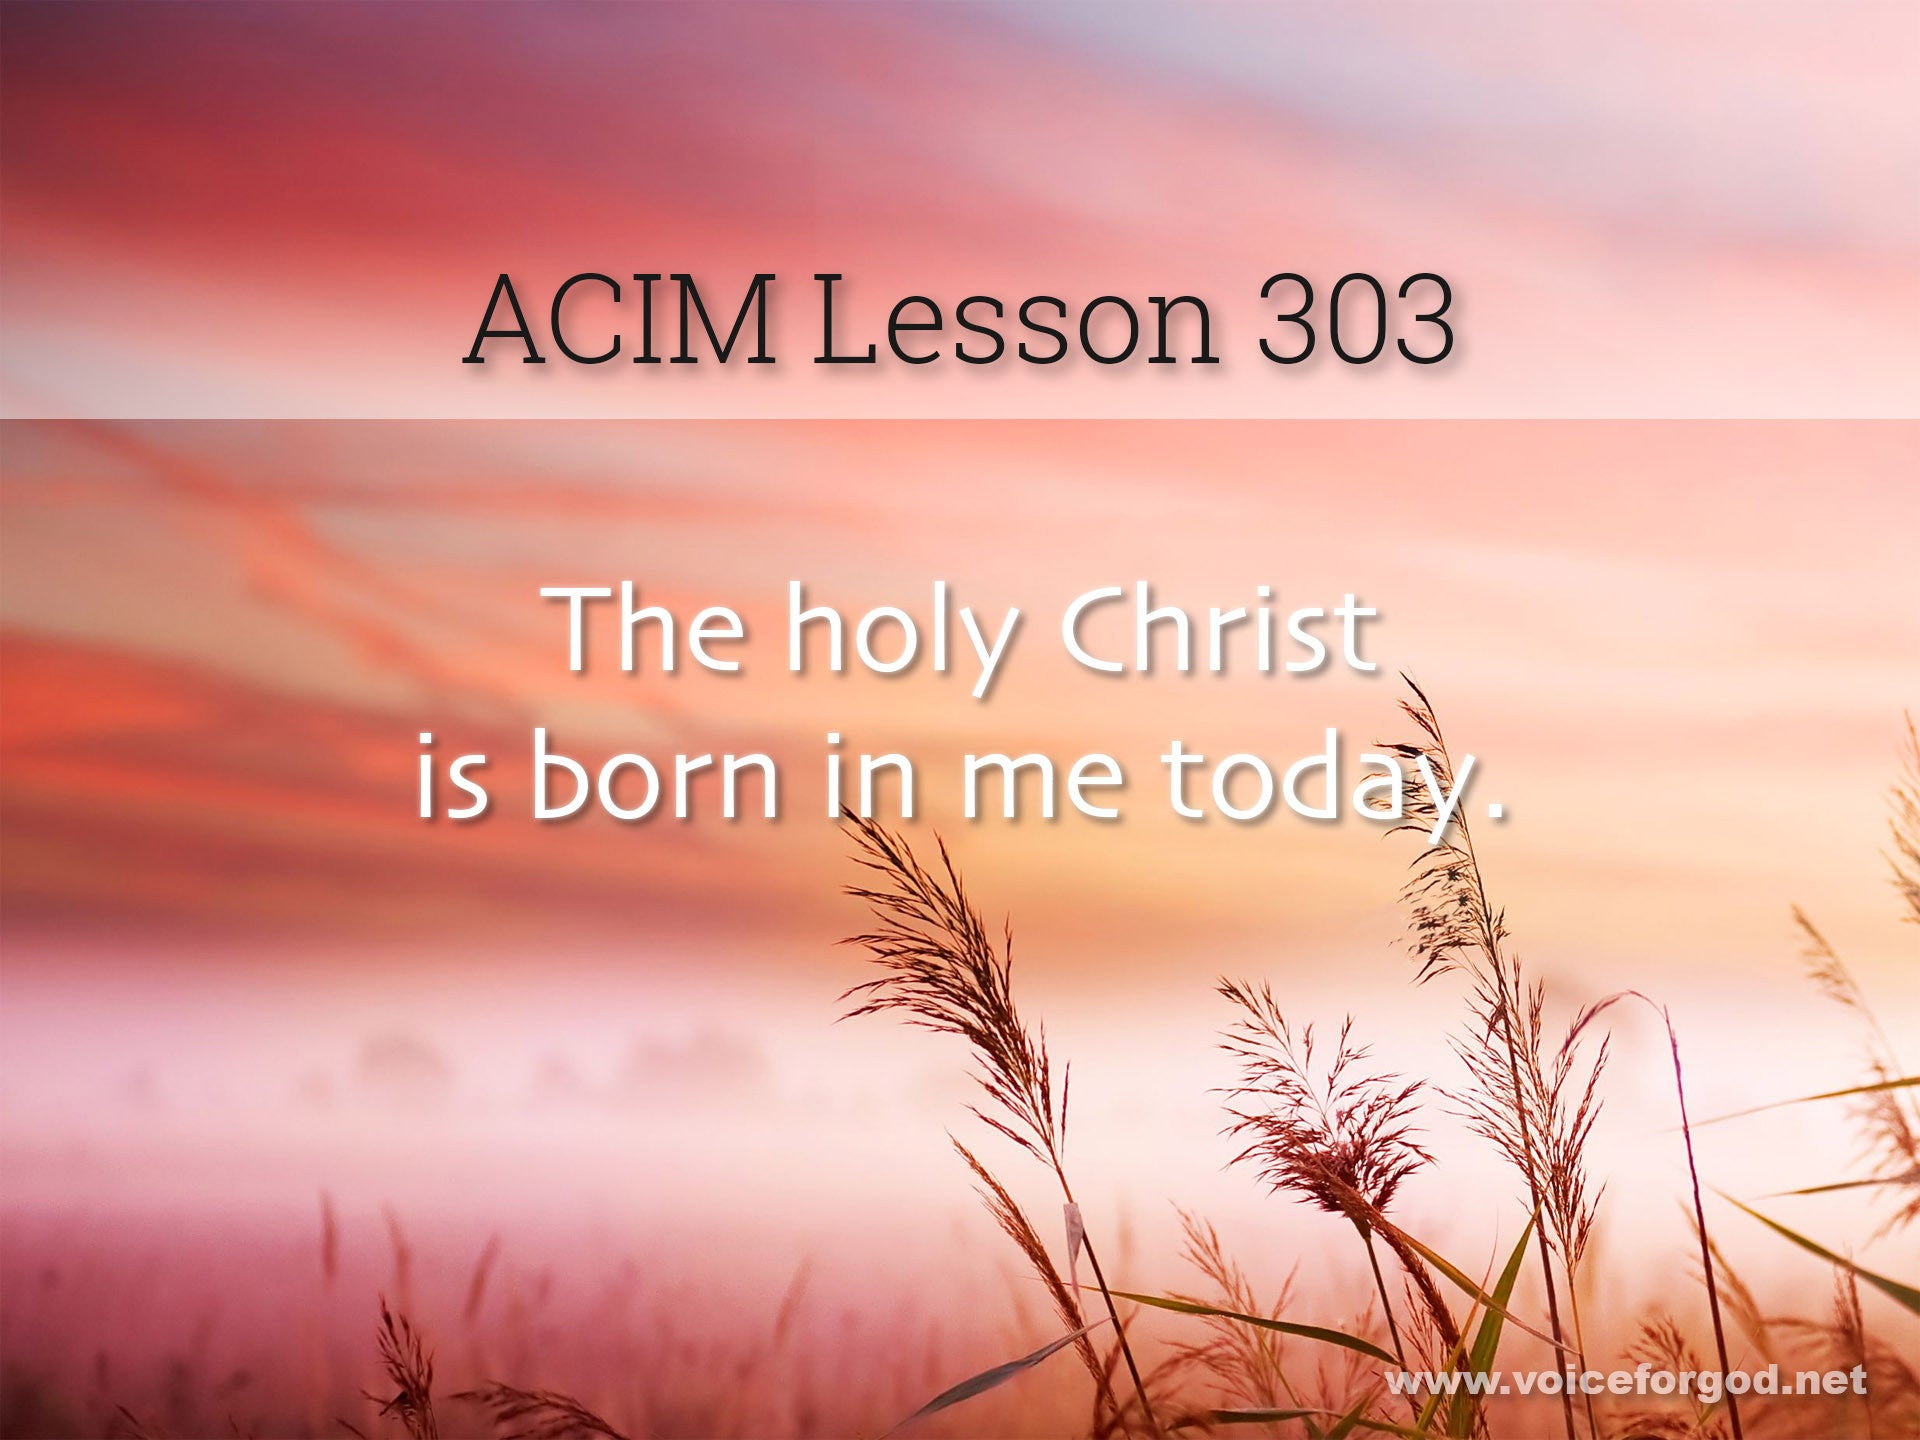 ACIM Lesson 303 - A Course in Miracles Workbook Lesson 303